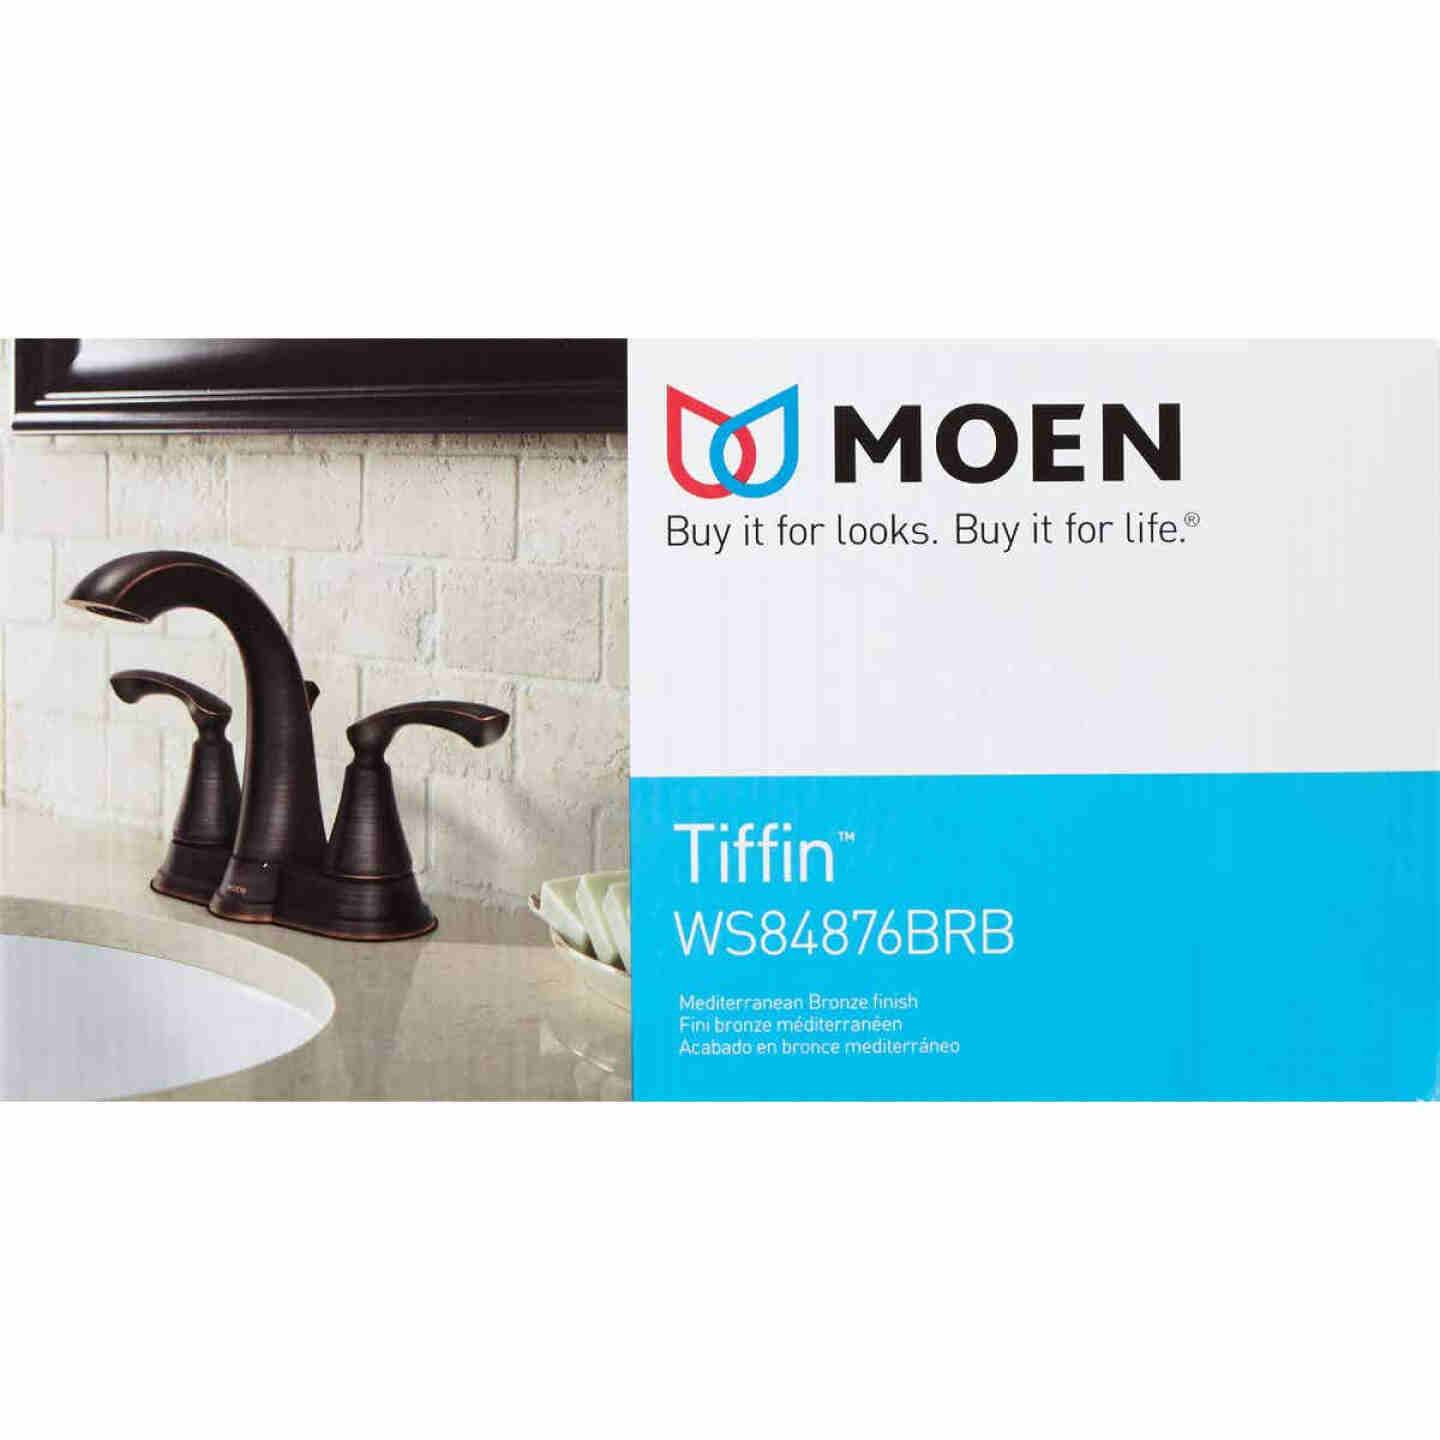 Moen Tiffin Mediterranean Bronze 2-Handle Lever 4 In. Centerset Bathroom Faucet Image 3